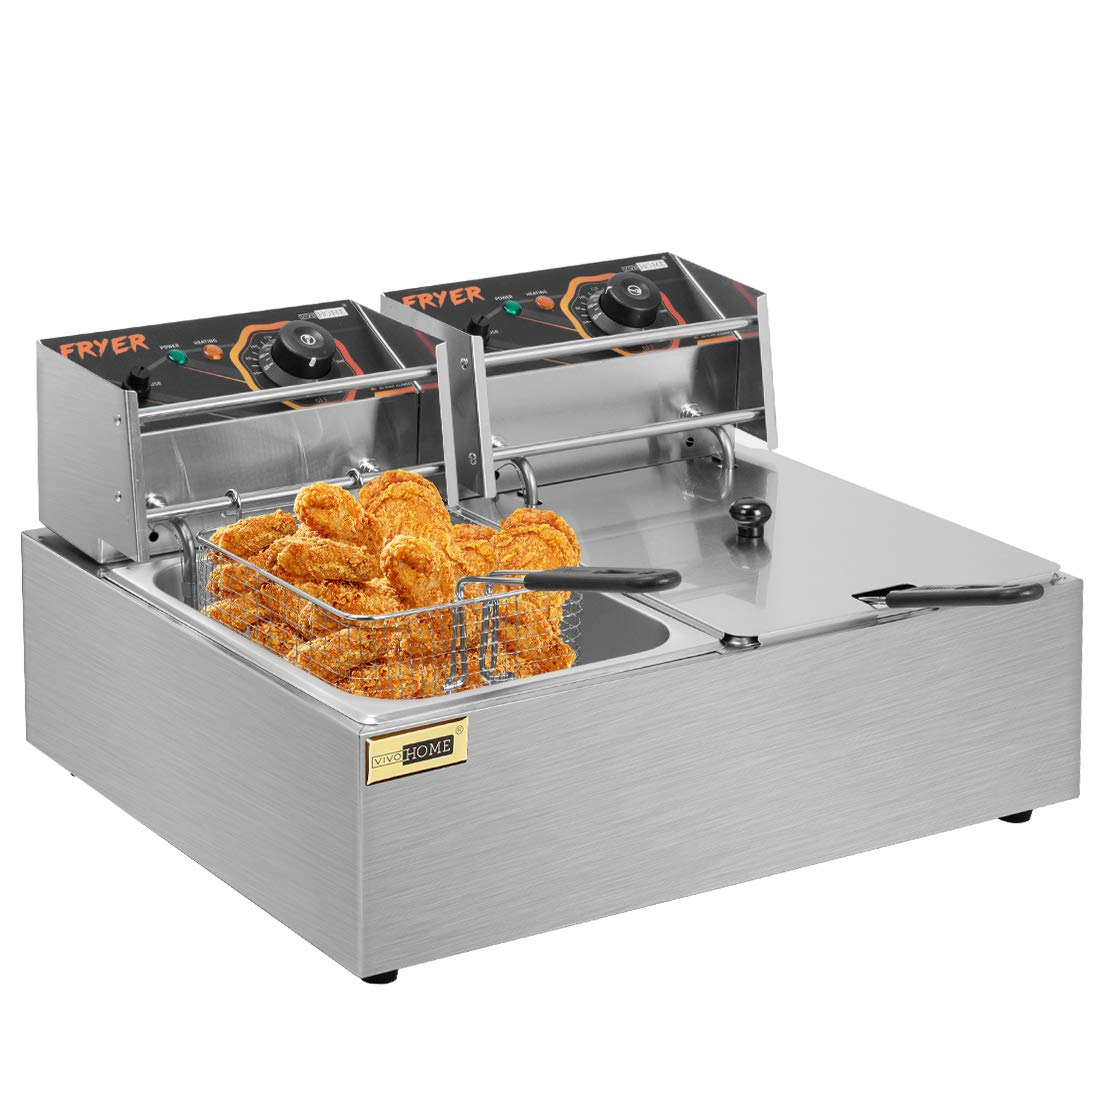 VIVOHOME Stainless Steel 20.5QT/19.5L Large Capacity Electric Commercial Dual Tank Deep Fryer Countertop with Double Baskets and Temperature Limiter